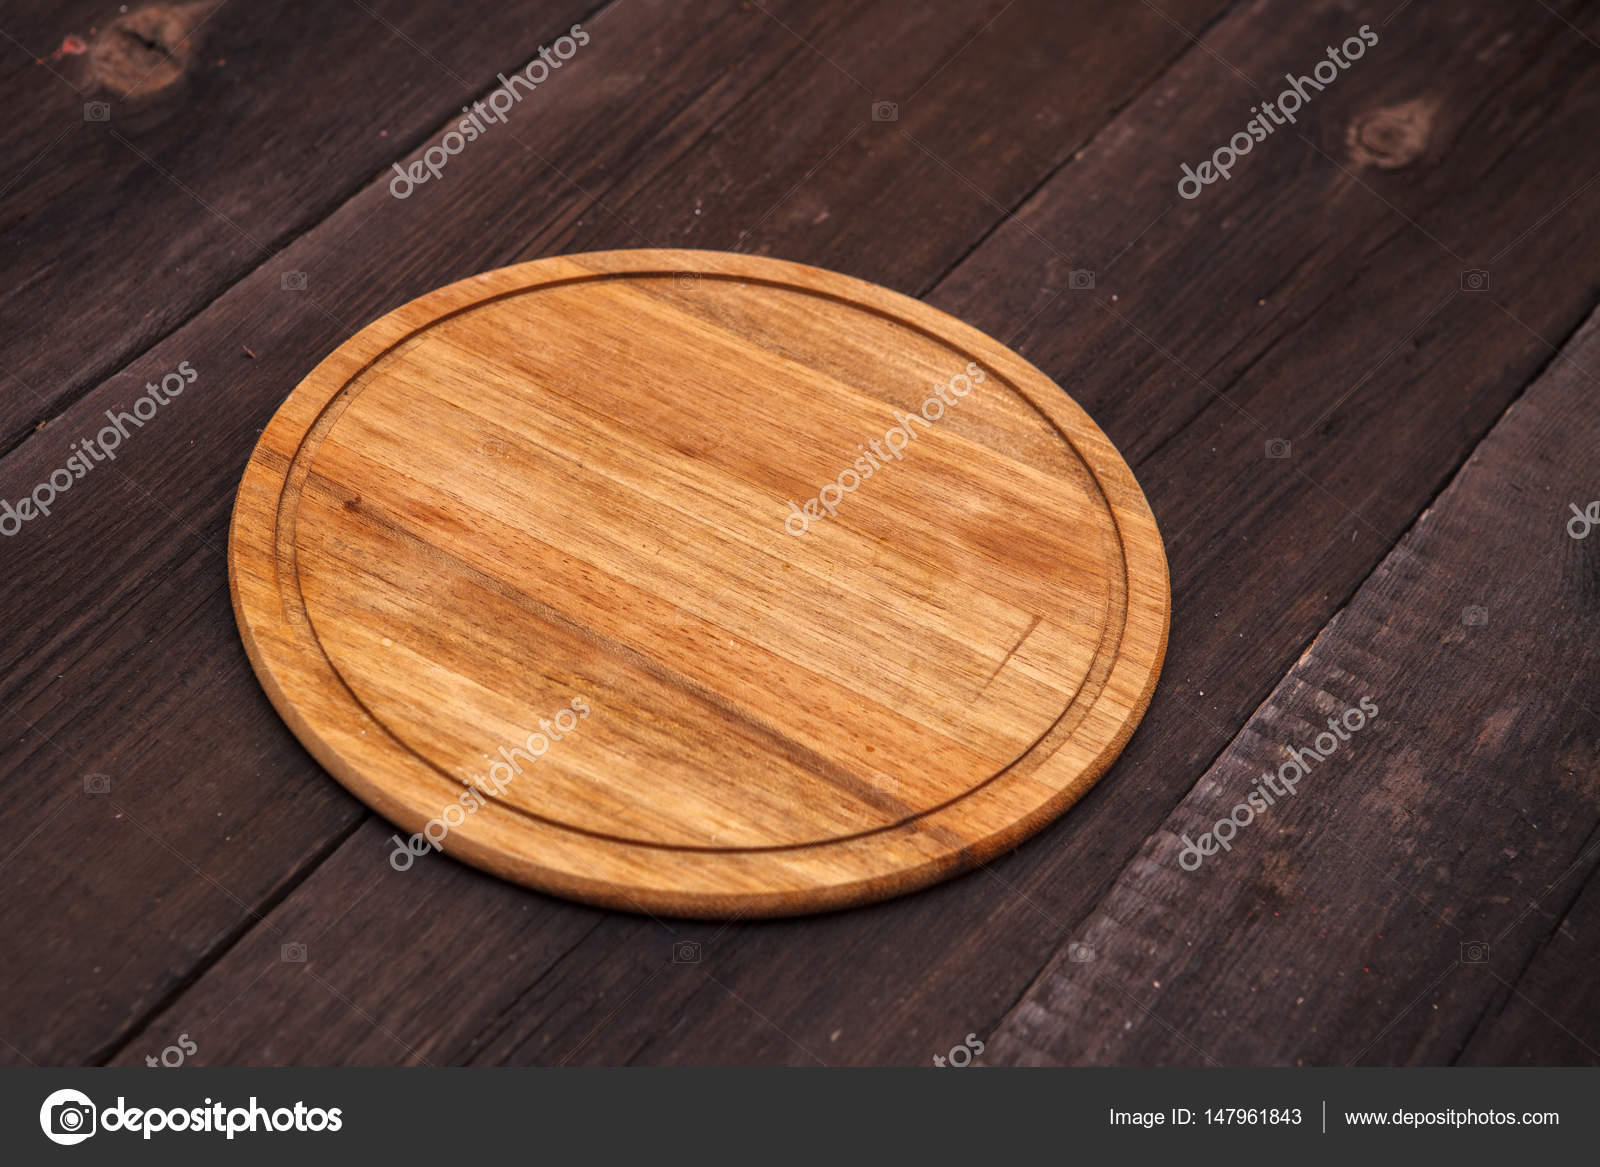 Round Wooden Cutting Board On A Wooden Background Stock Photo C Toomler 147961843